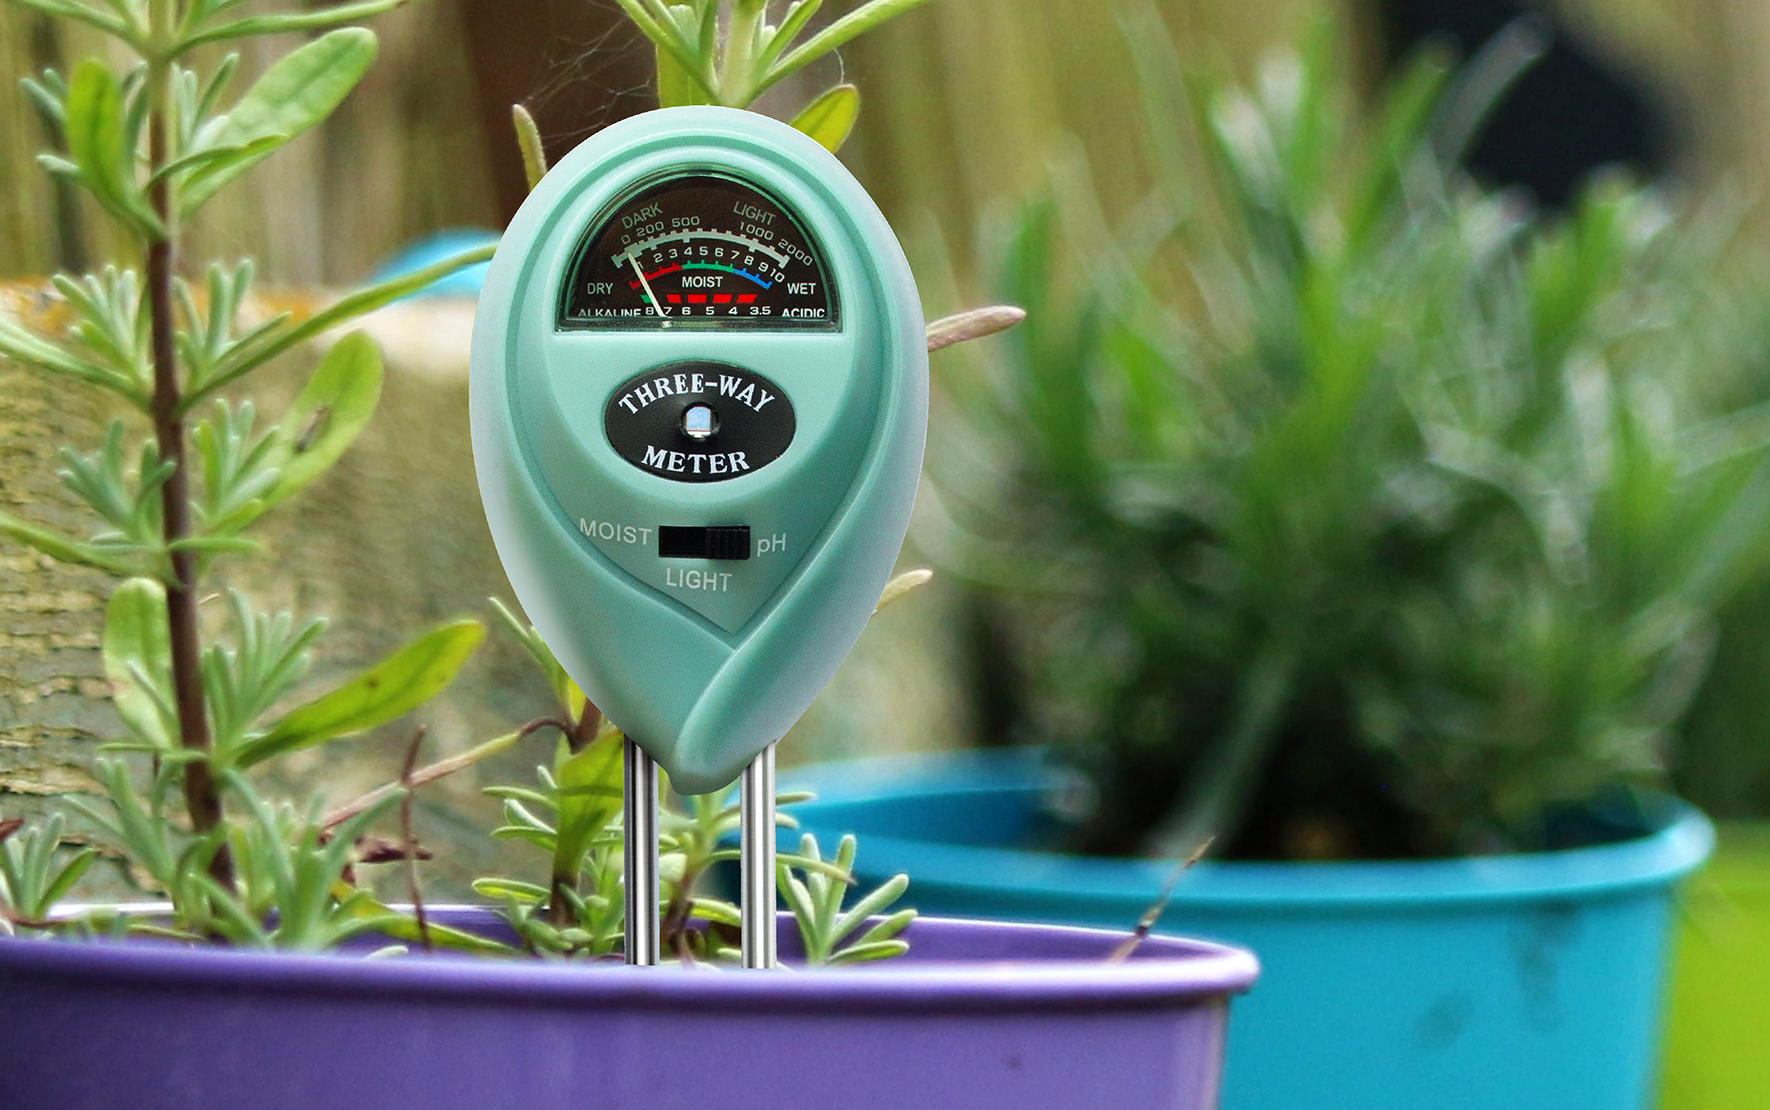 Soil meter in a pot